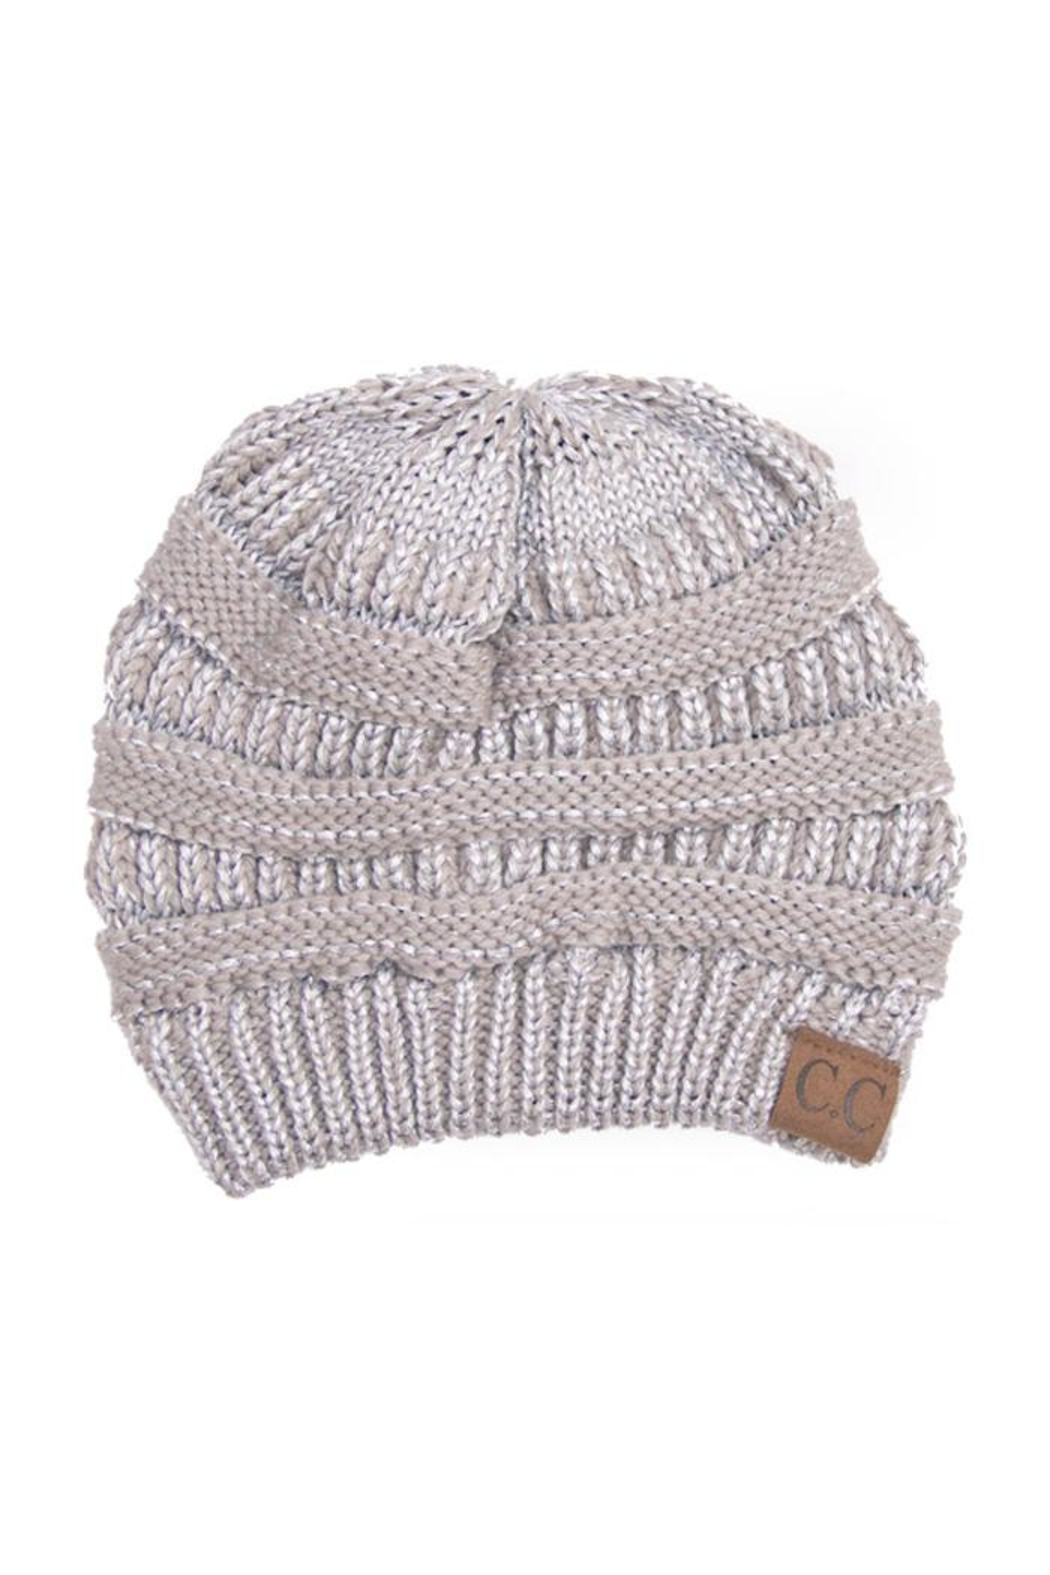 C.C. Sparkle-N-Shine Beanies - Front Cropped Image